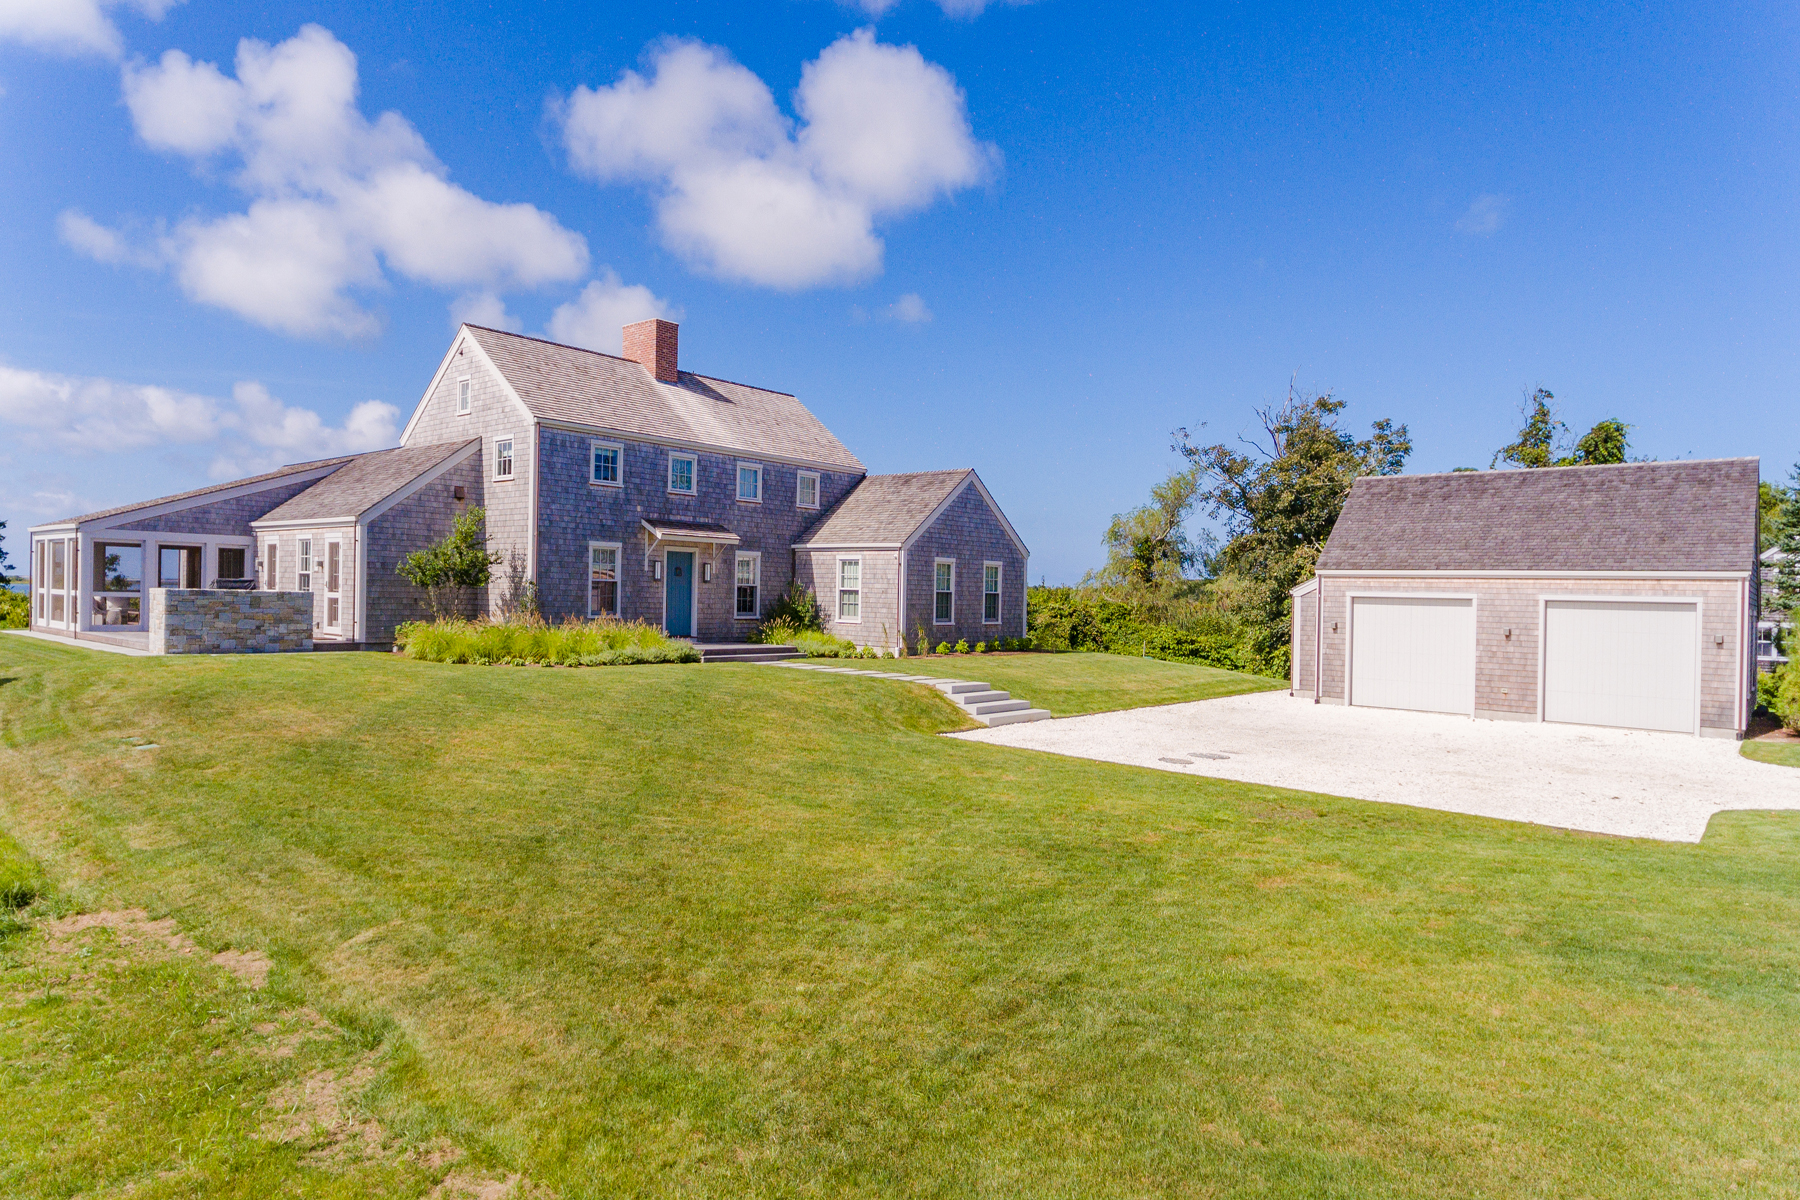 Single Family Homes for Active at Spectacular Views and New Construction in Polpis 250 Polpis Road Nantucket, Massachusetts 02554 United States